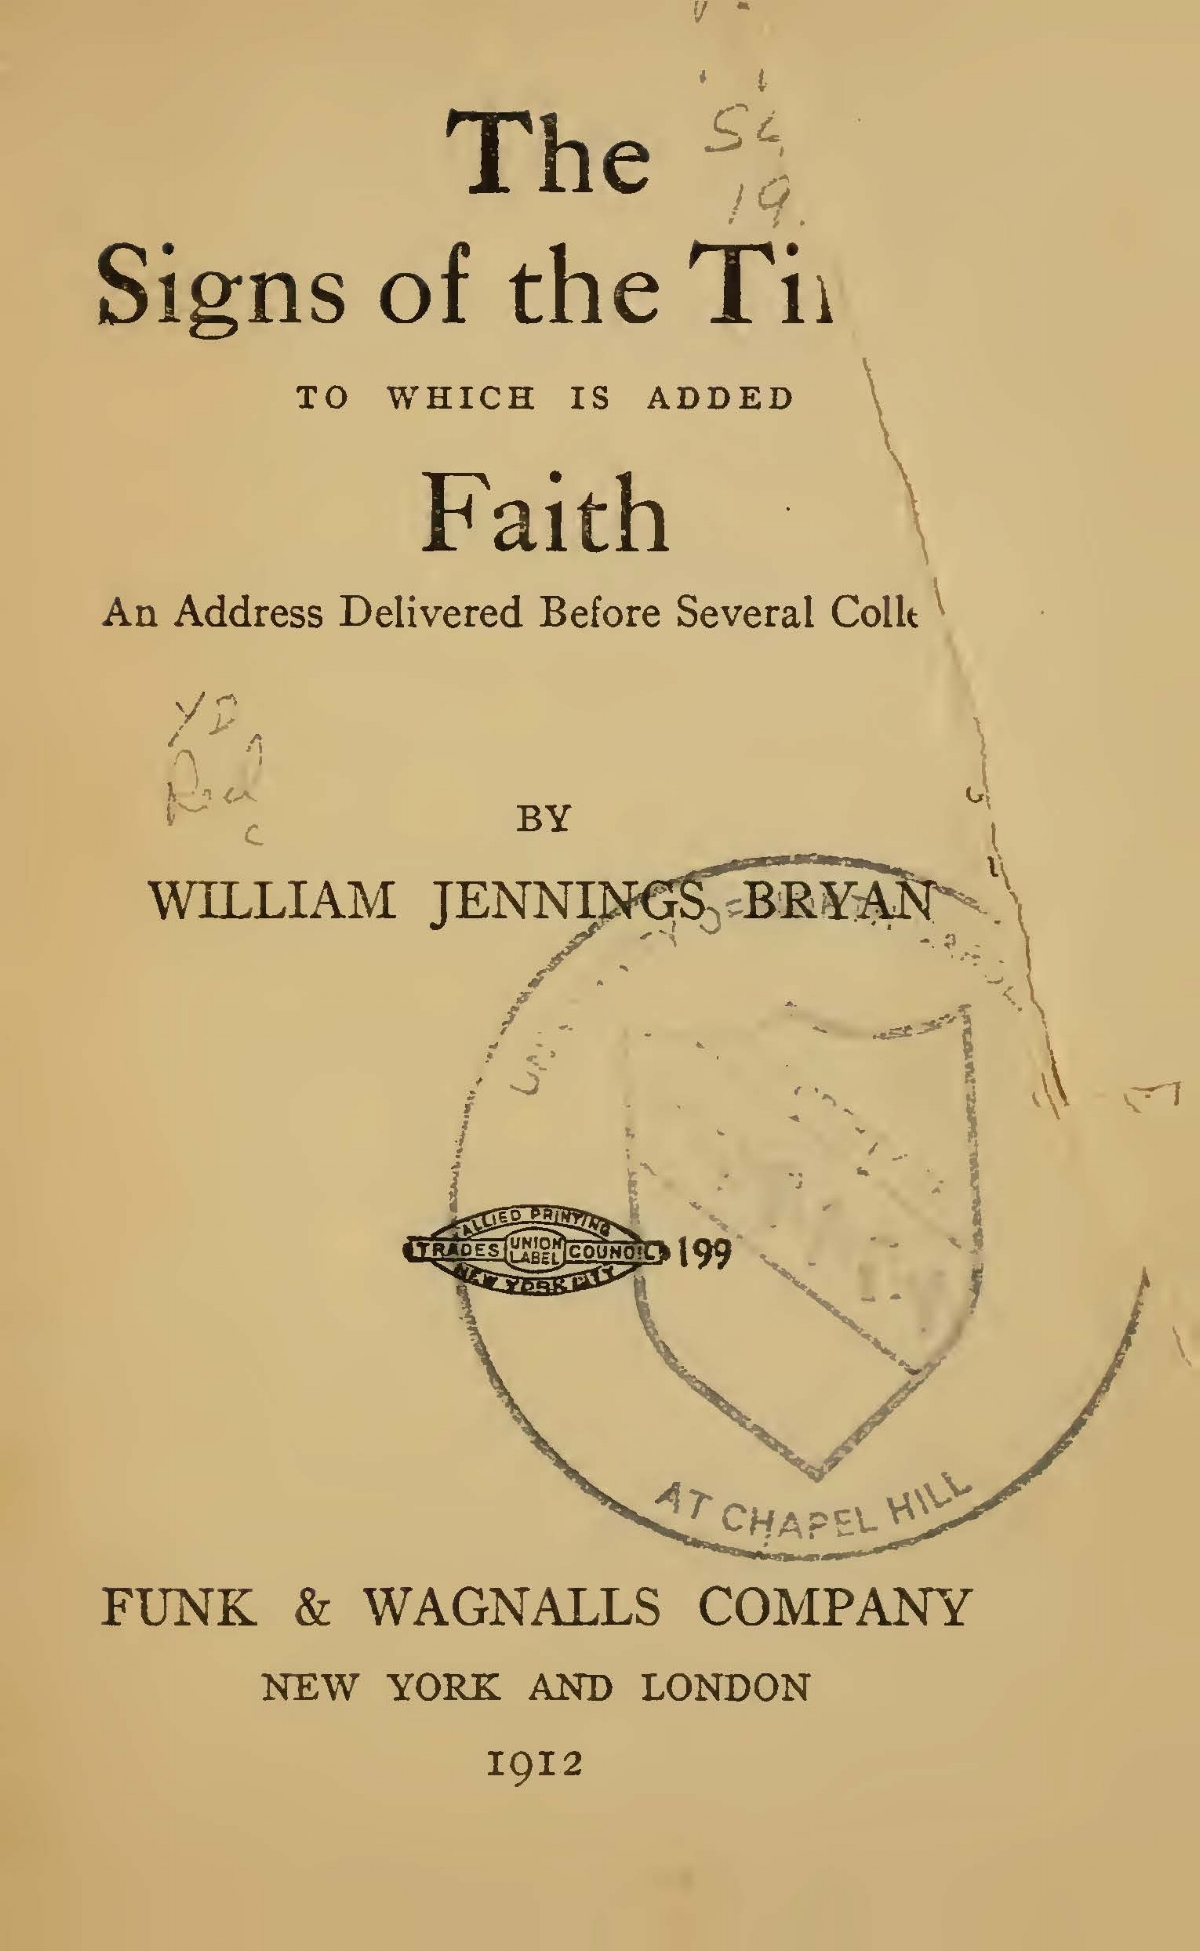 Bryan, Sr., William Jennings, The Signs of the Times Title Page.jpg